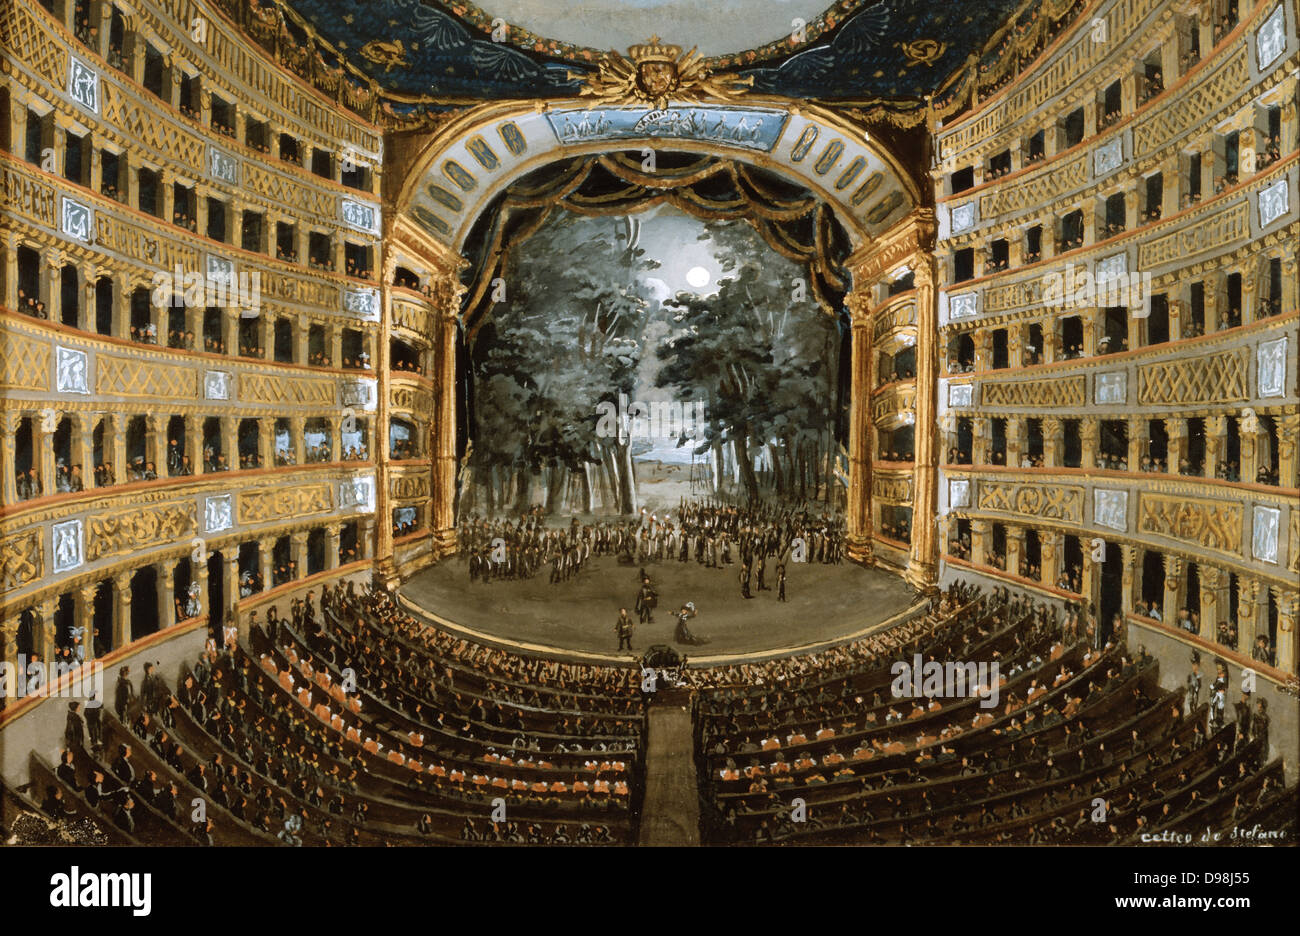 Naples: Interior of the Theatre of San Carlo' c1830. Gouache by Cetteo de Stefano. Audience Stalls Box Stage - Stock Image